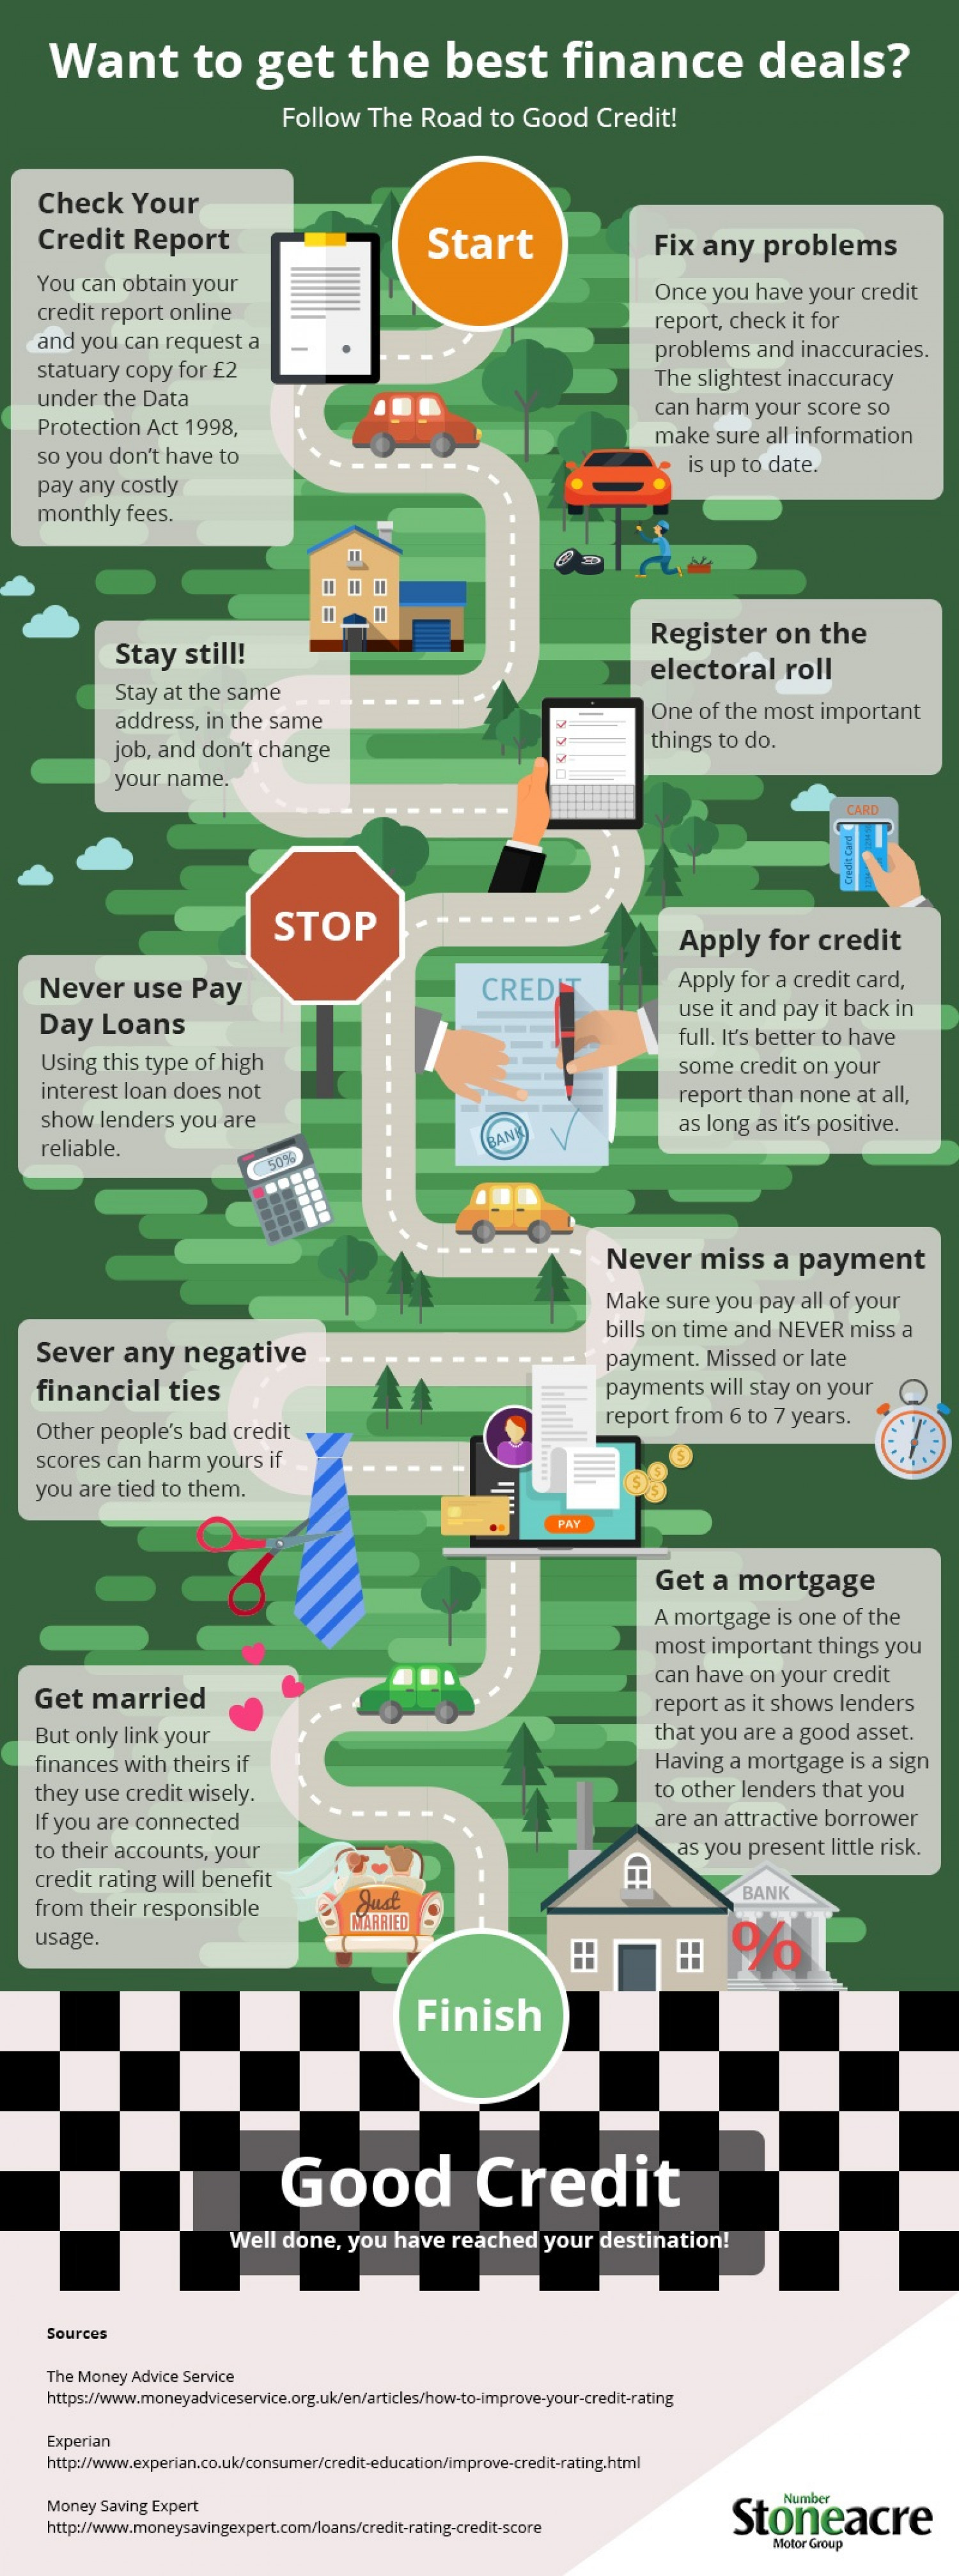 The Road to Good Credit Infographic